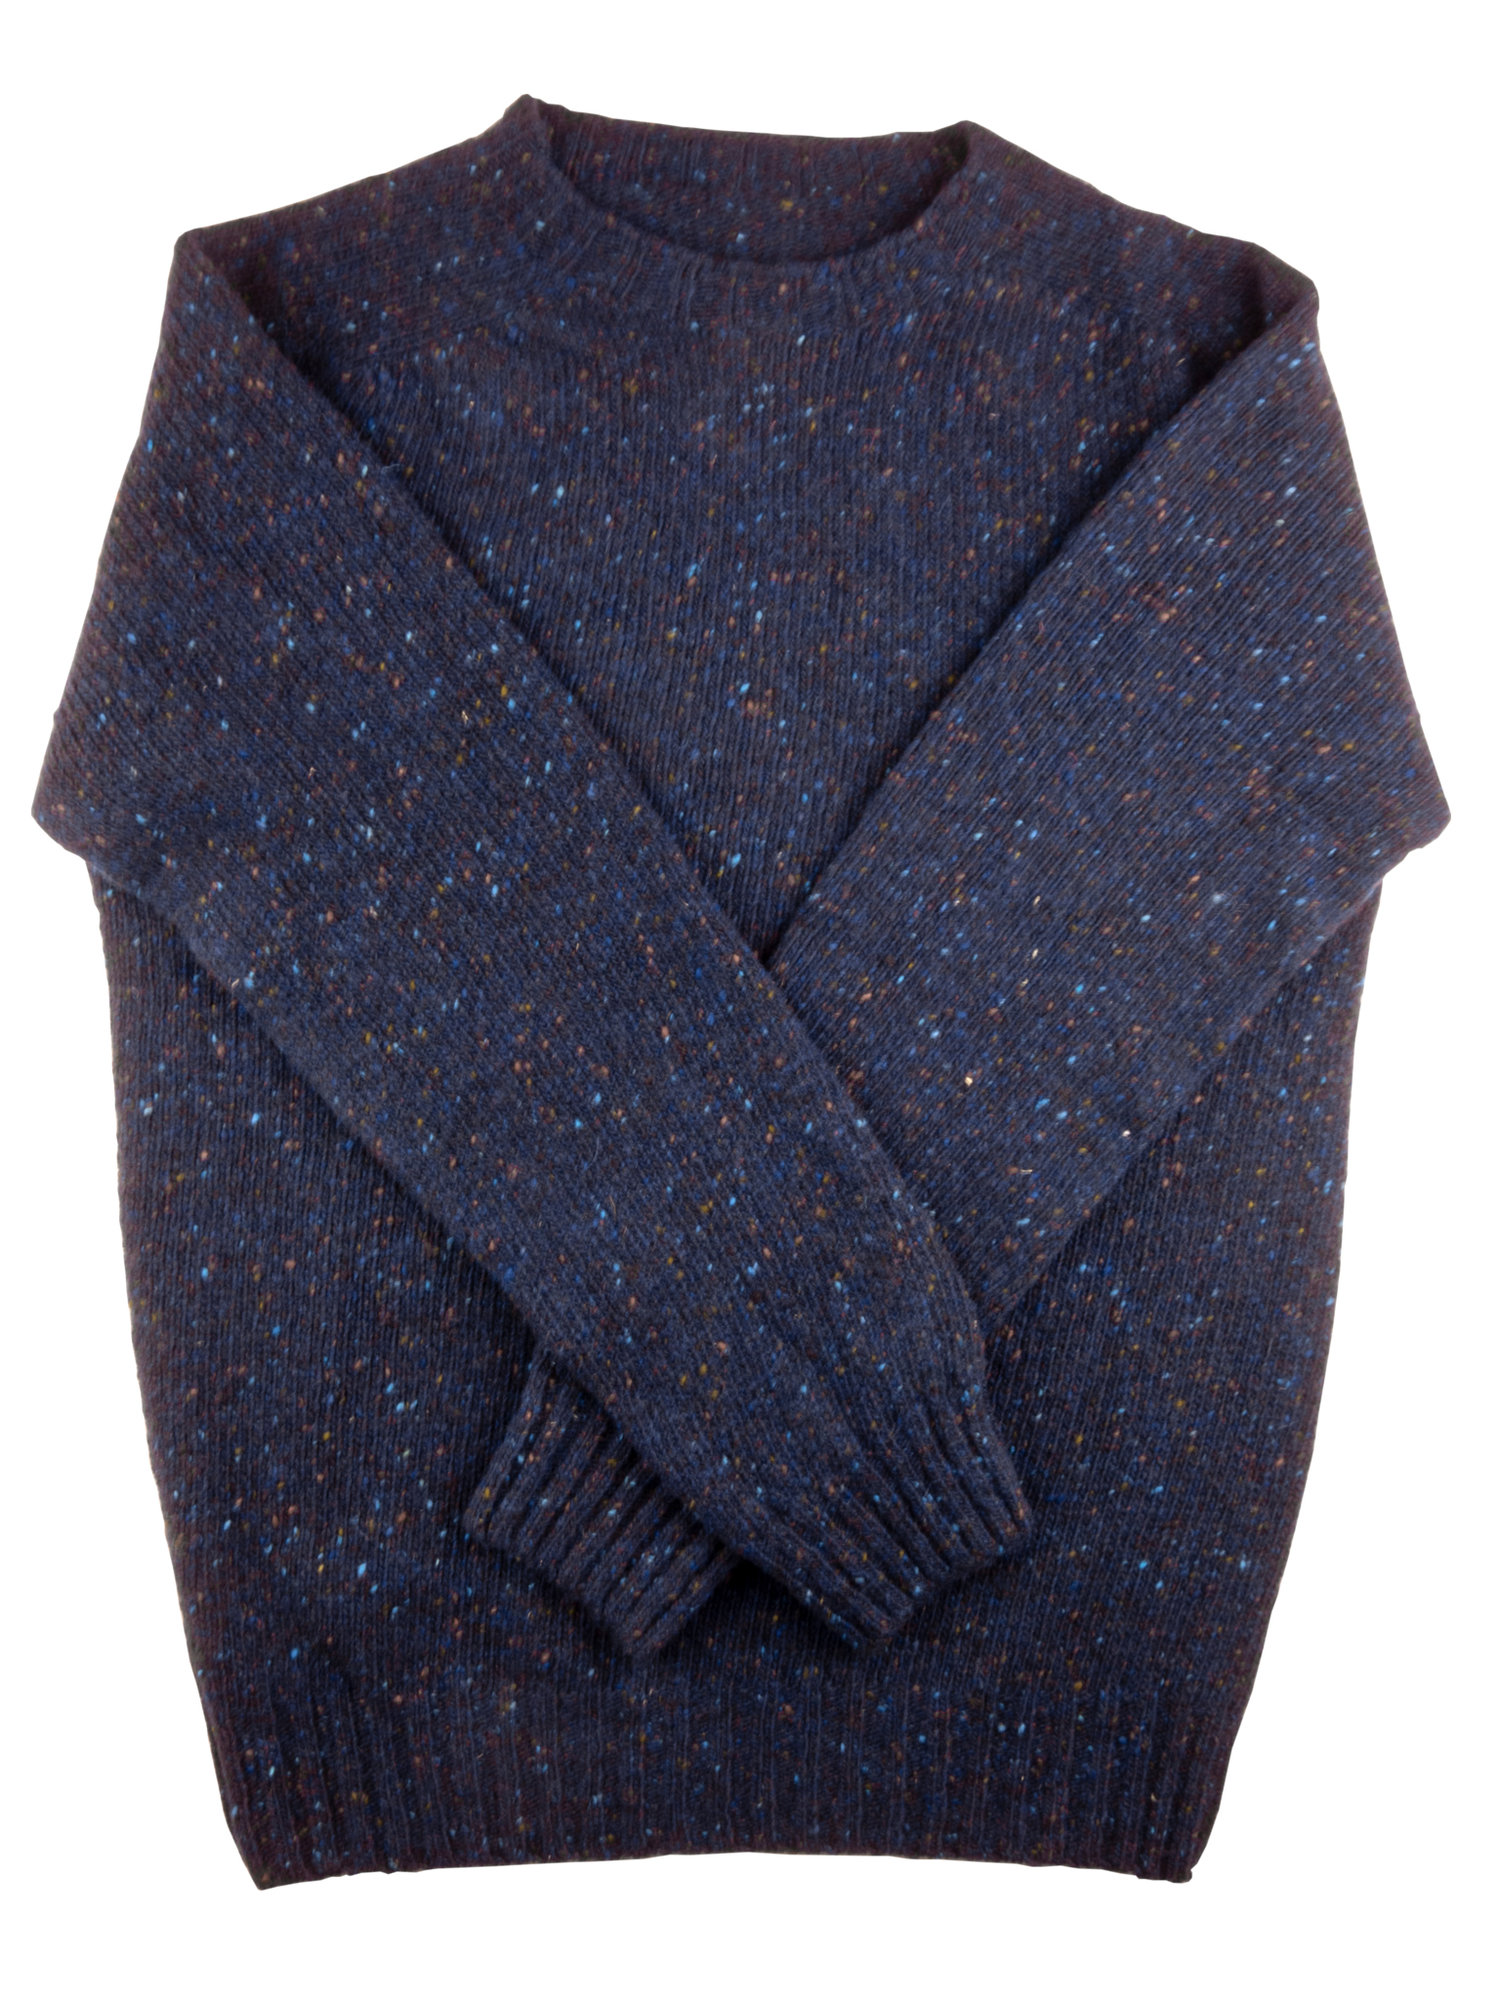 Sweater Donegal Navy.jpg